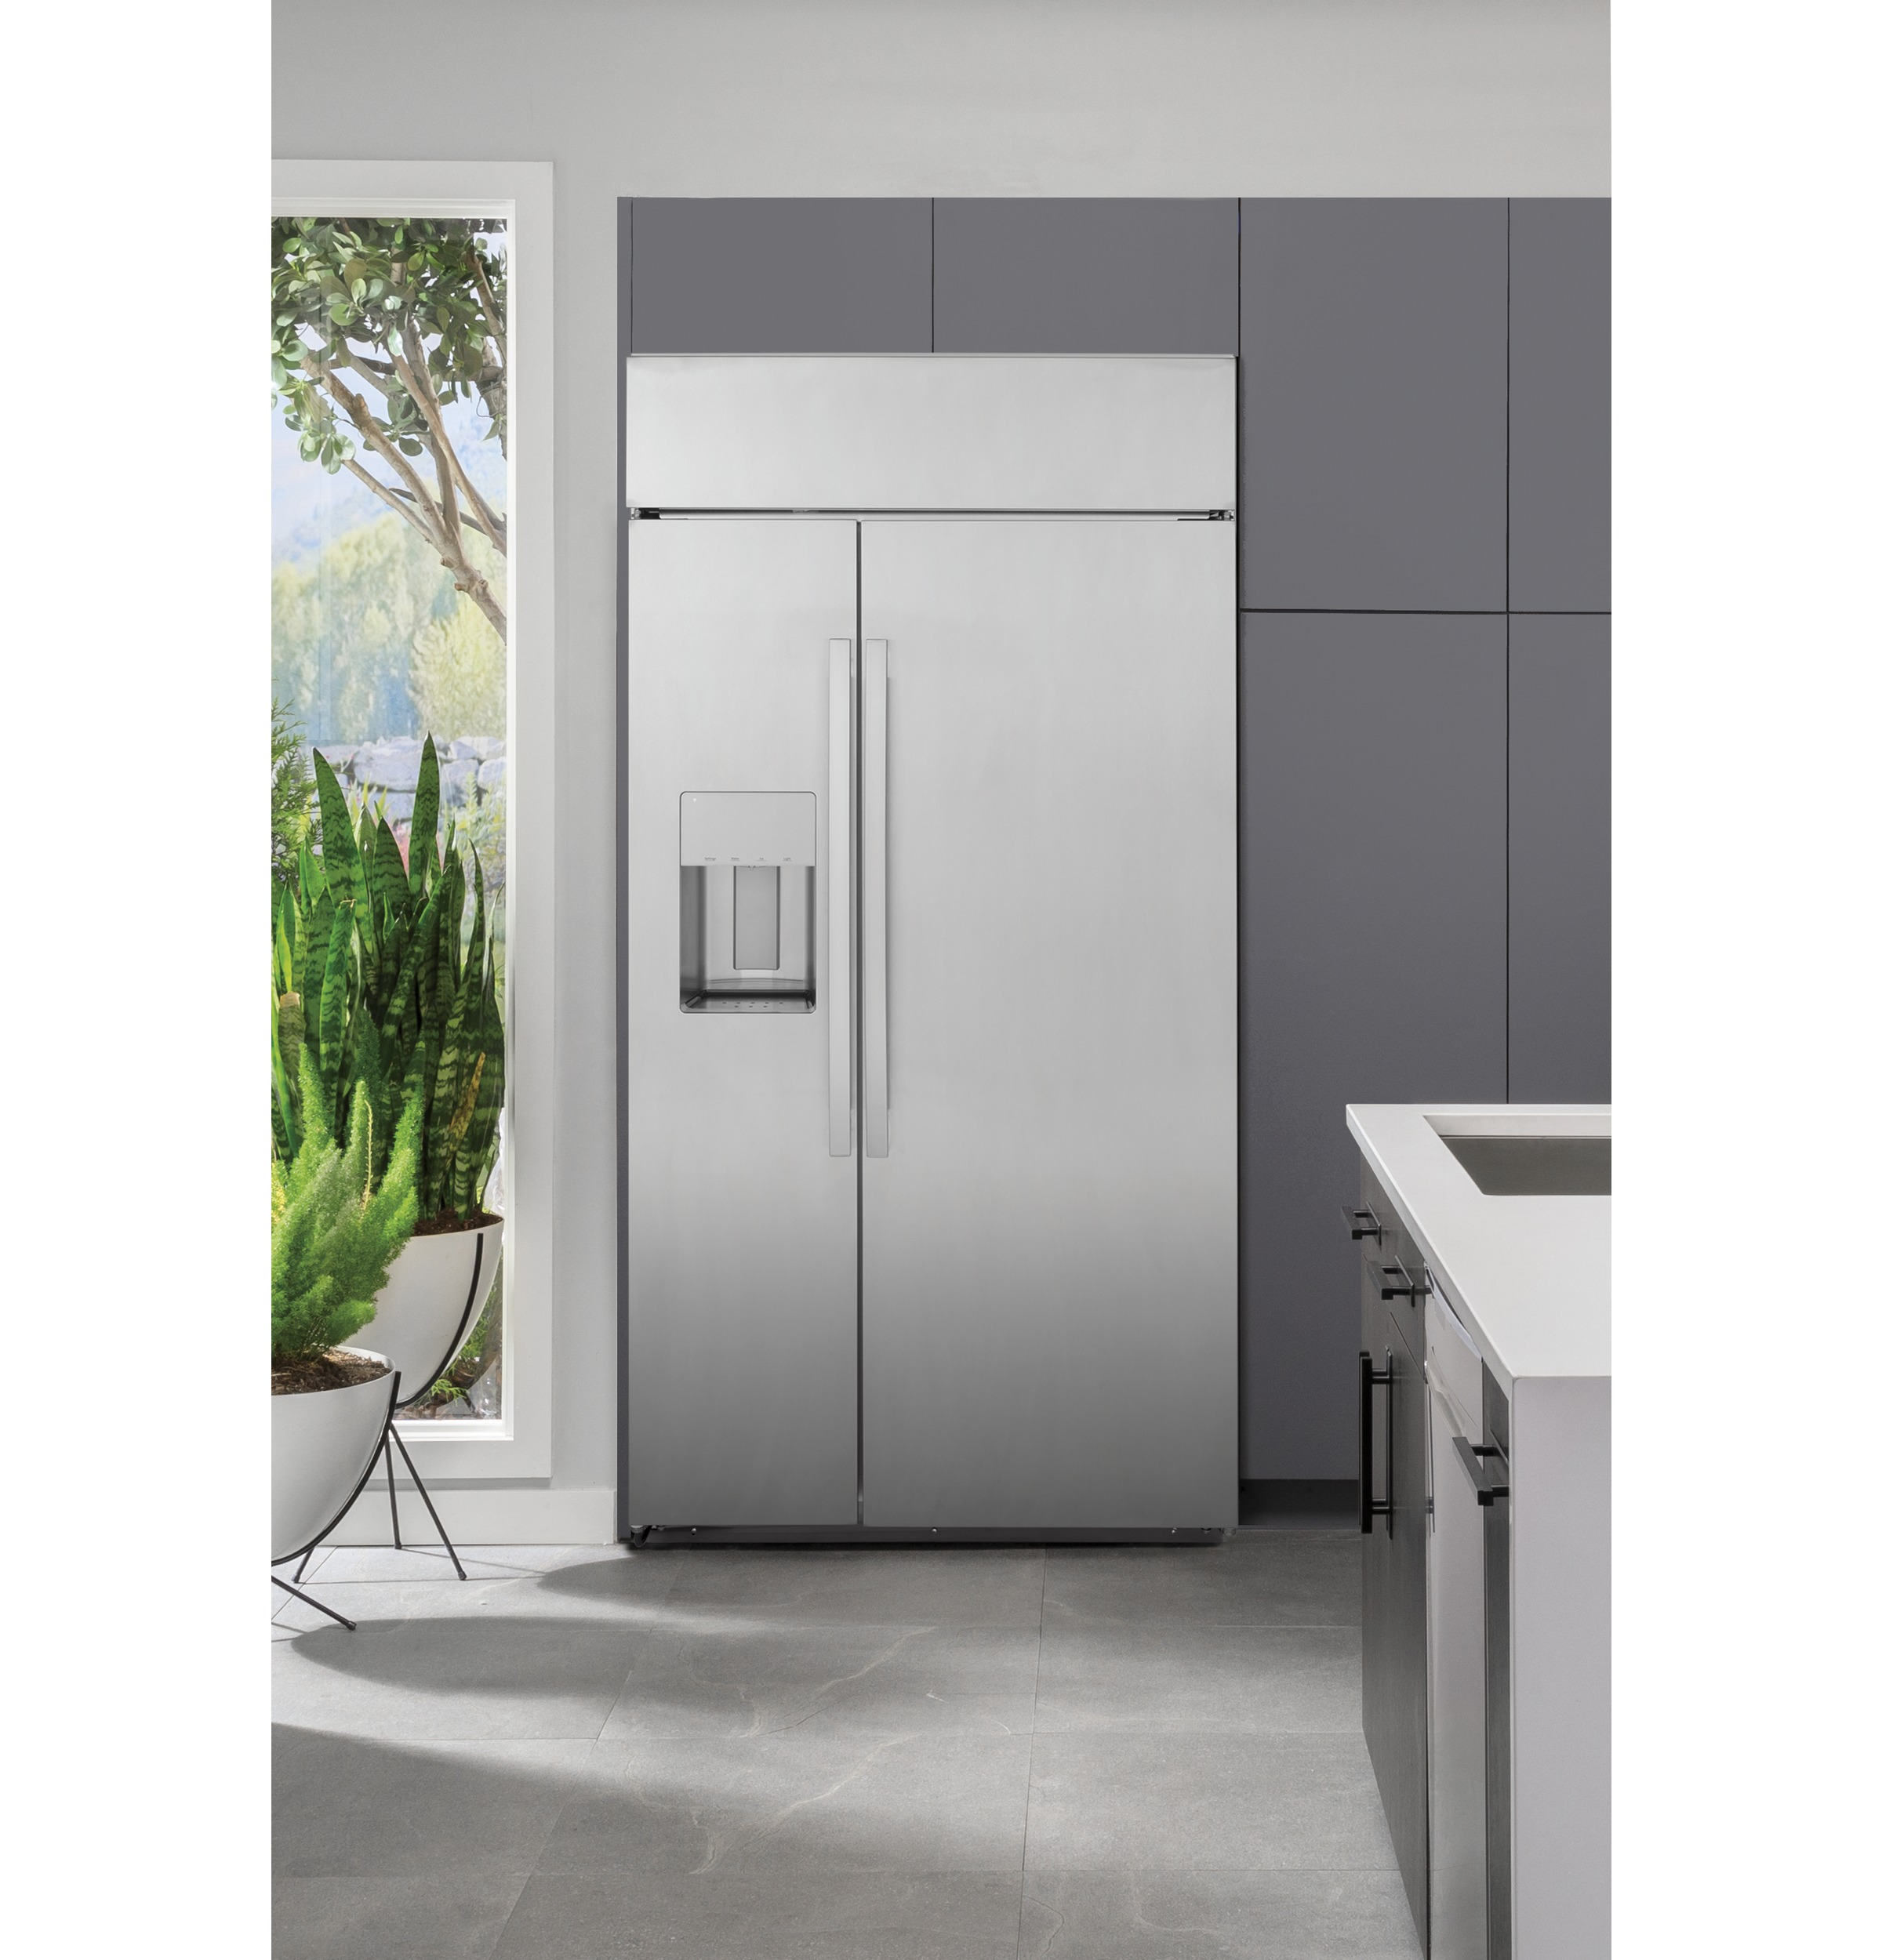 "Model: PSB48YSNSS | Profile GE Profile™ Series 48"" Smart Built-In Side-by-Side Refrigerator with Dispenser"